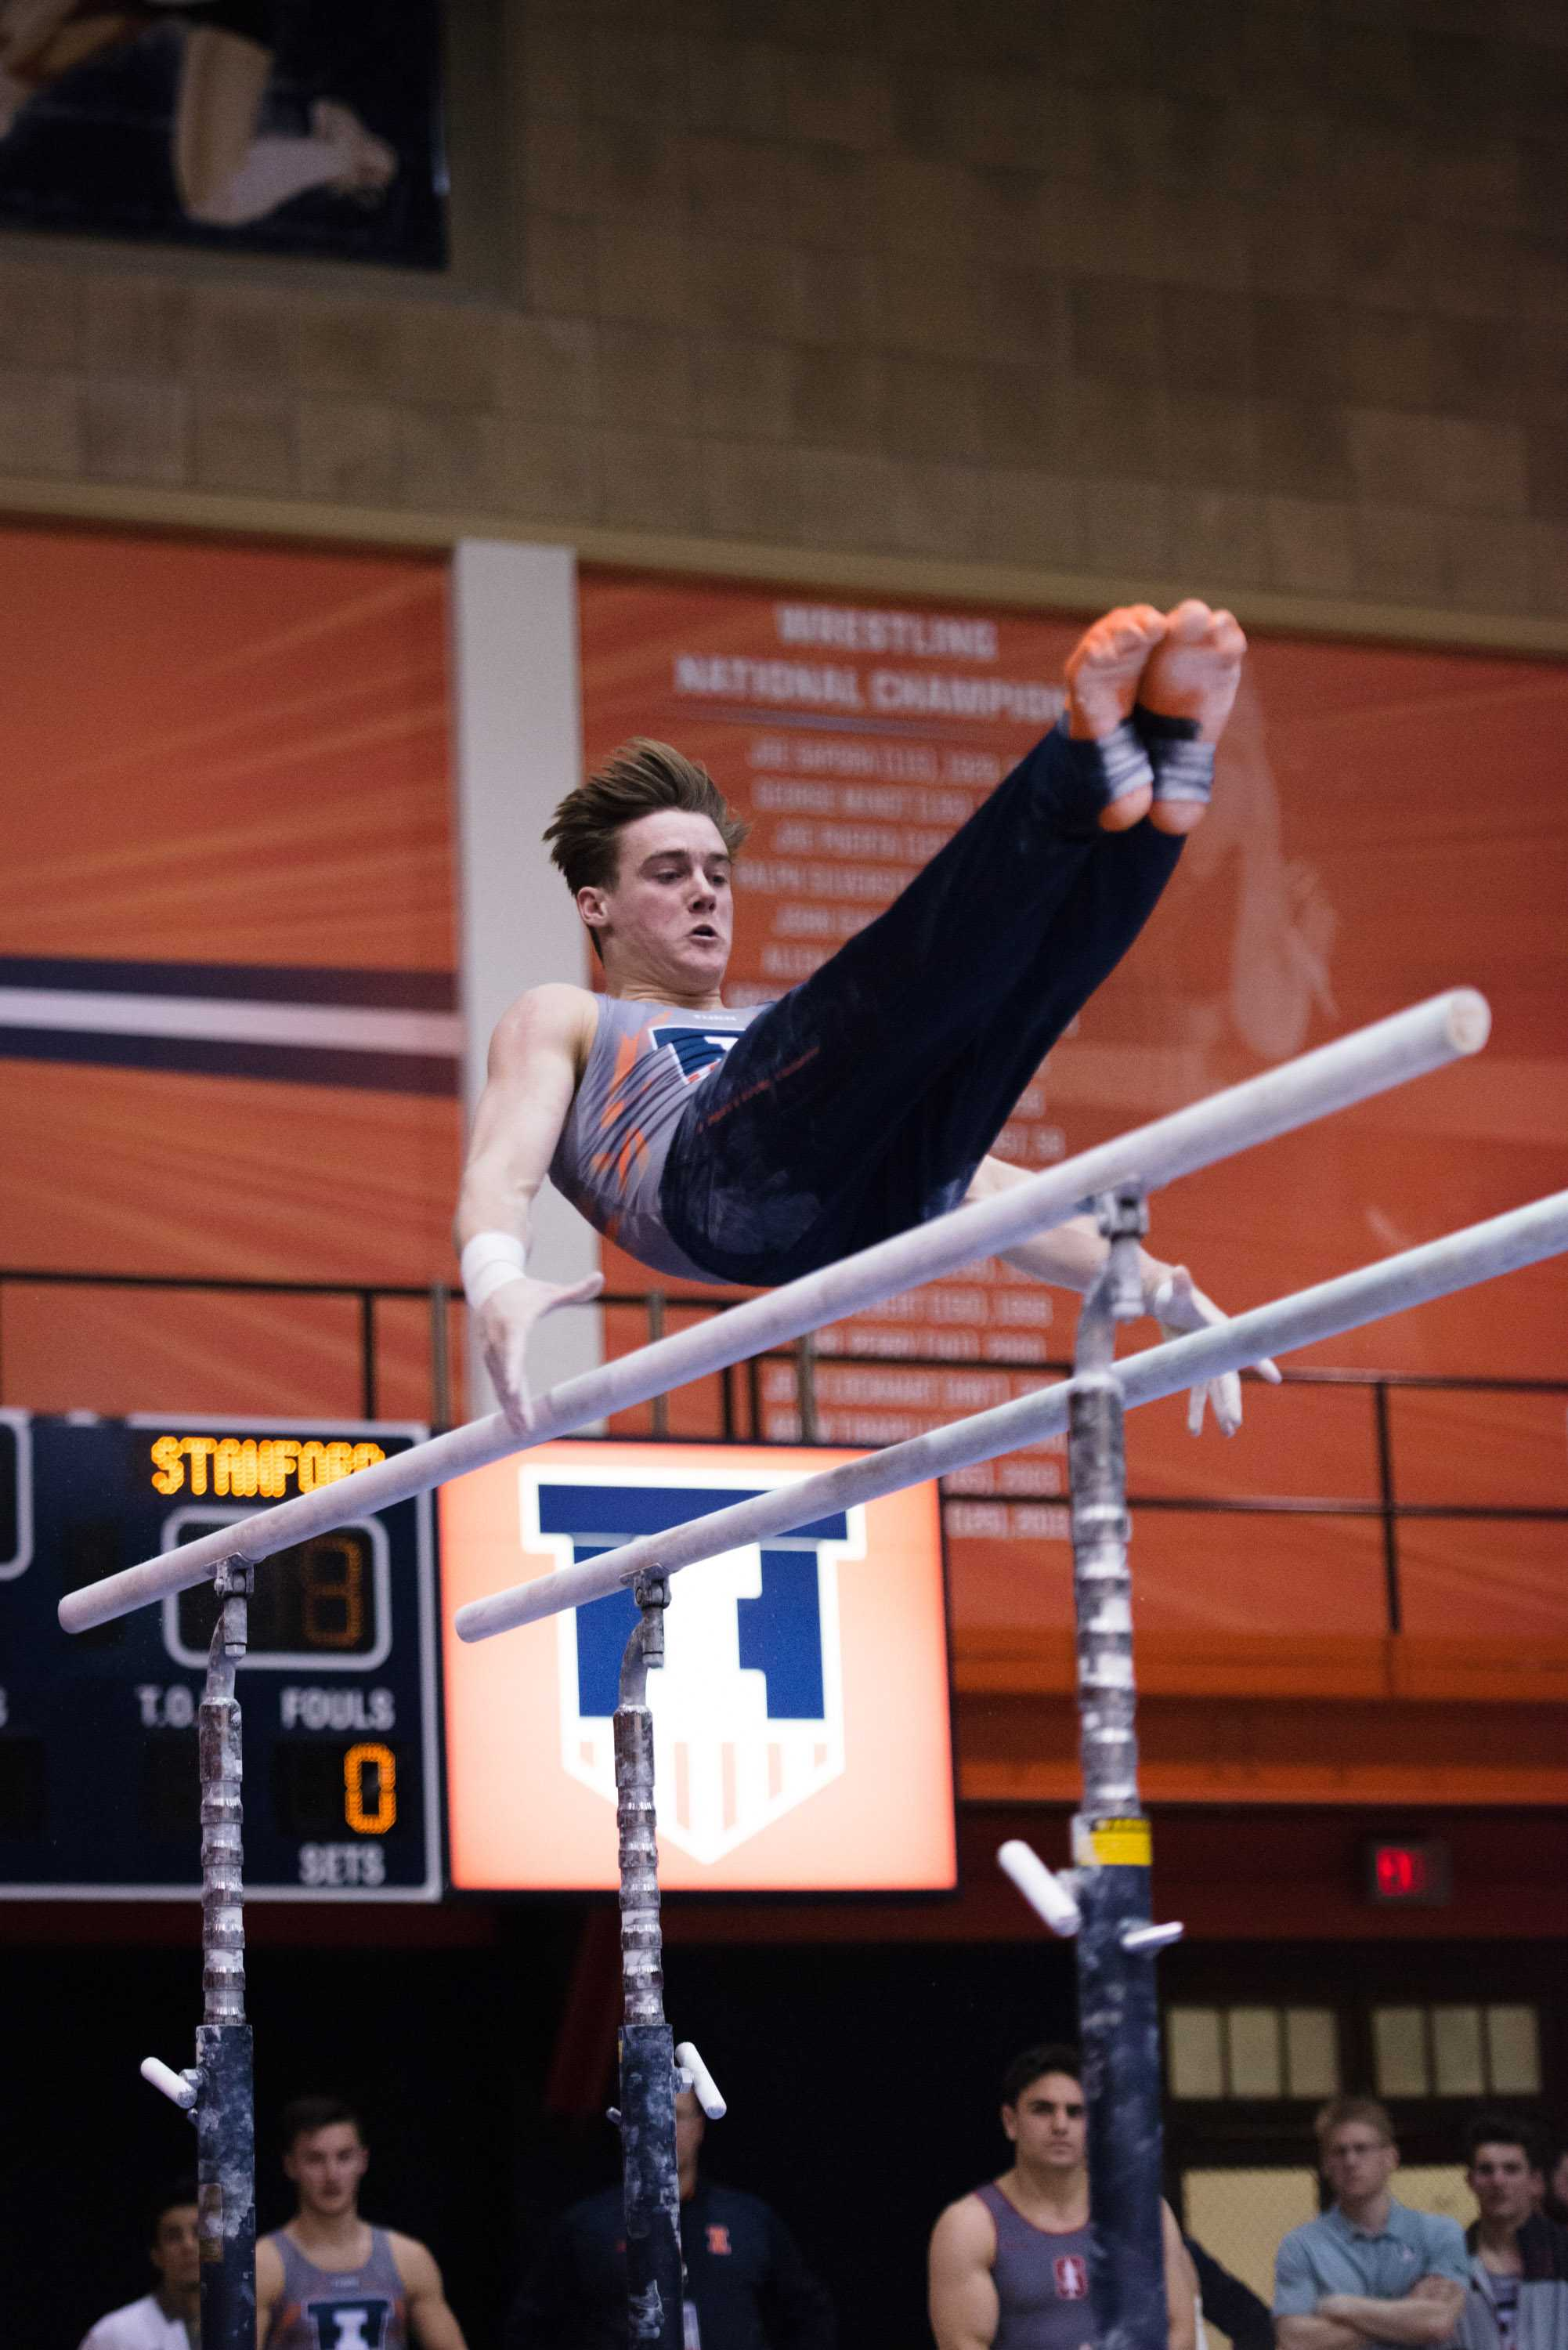 Illinois' Tyson Bull performs a routine on the parallel bars during the meet against Stanford at Huff Hall on Friday, March 6. Bull helped the Illini win the Windy City Invitational with a title on the horizontal bar.